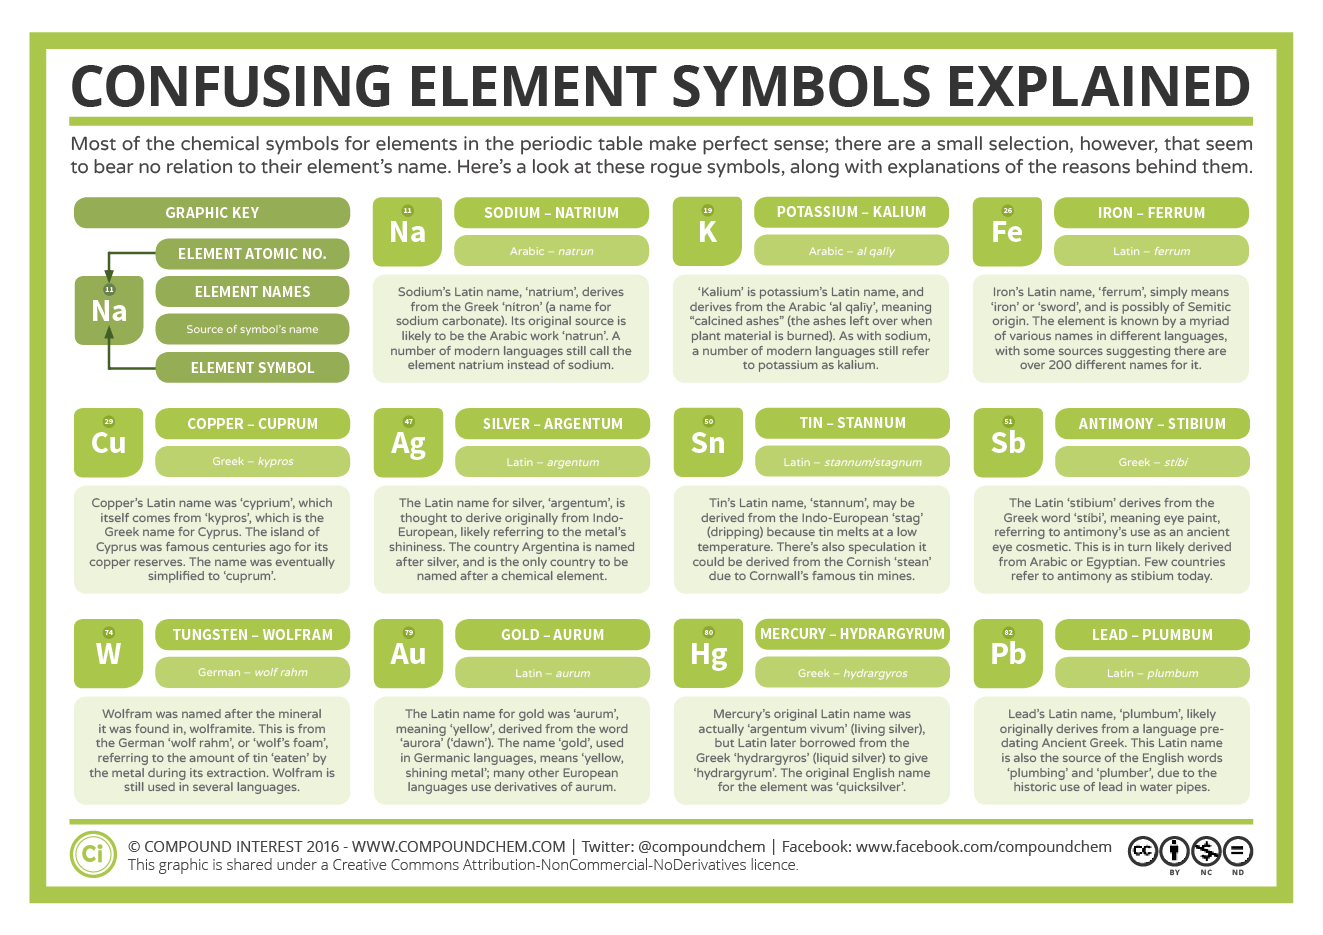 Element oddities 11 confusing chemical symbols explained compound 11 confusing chemical element symbols explained urtaz Images